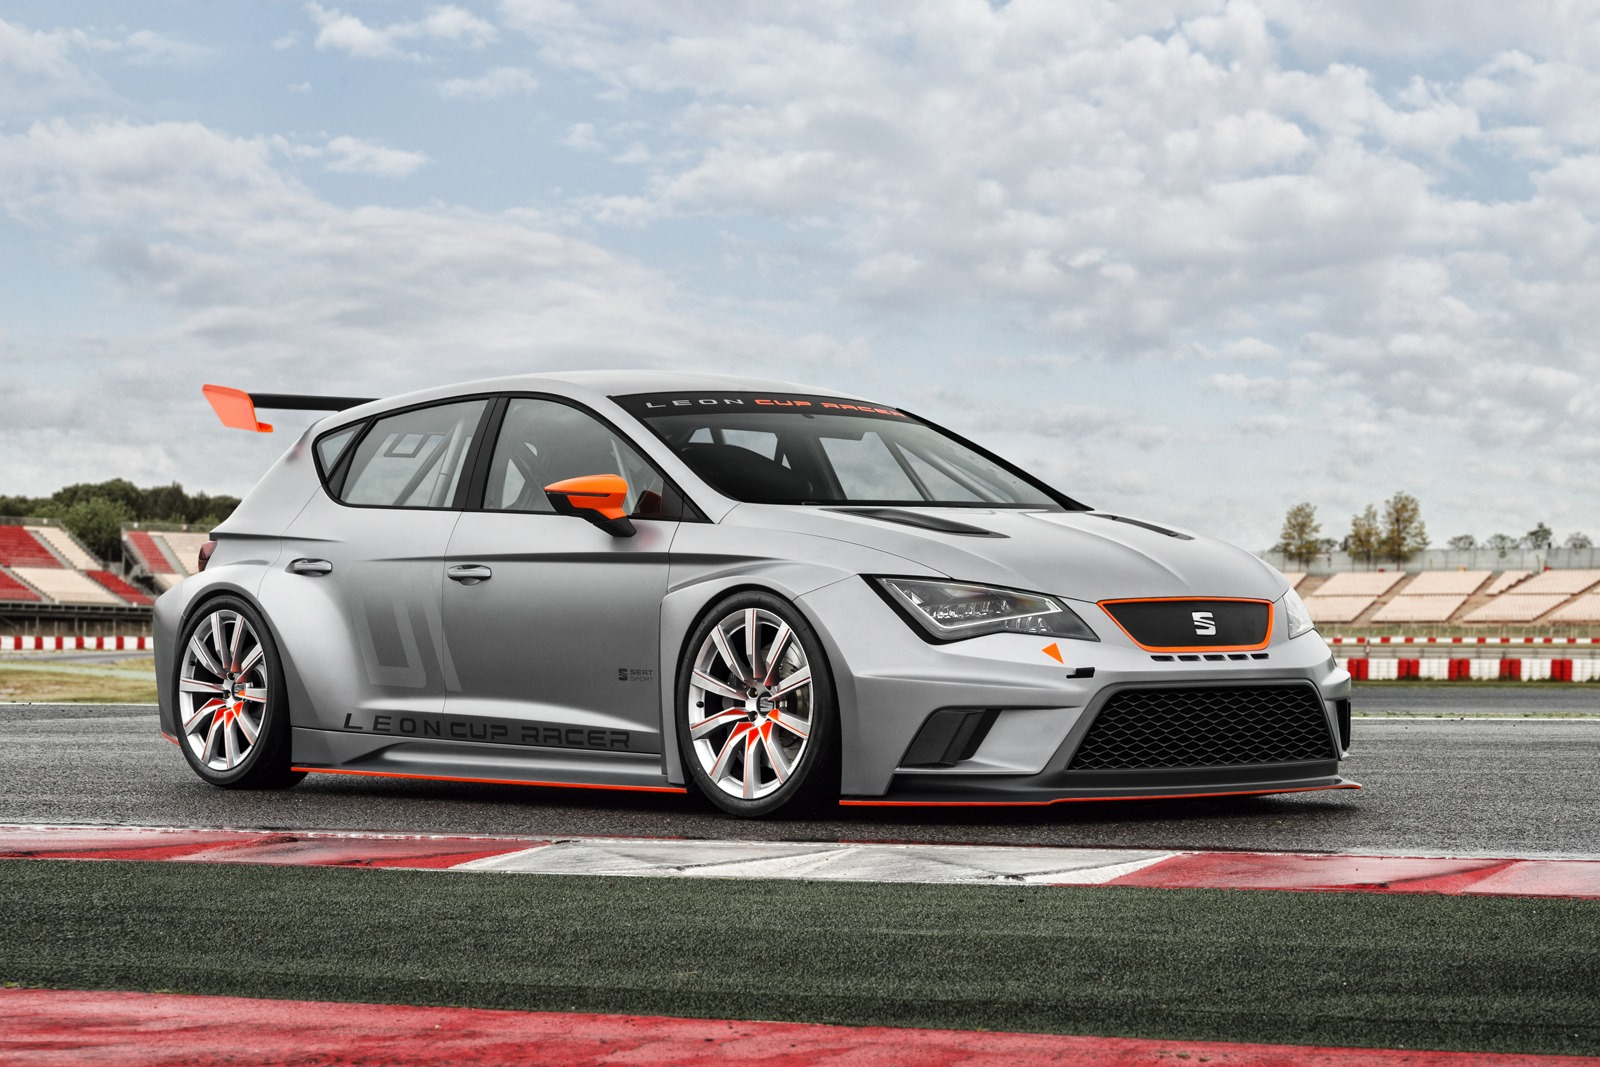 Seat Leon Cup Racer - 1600x1067